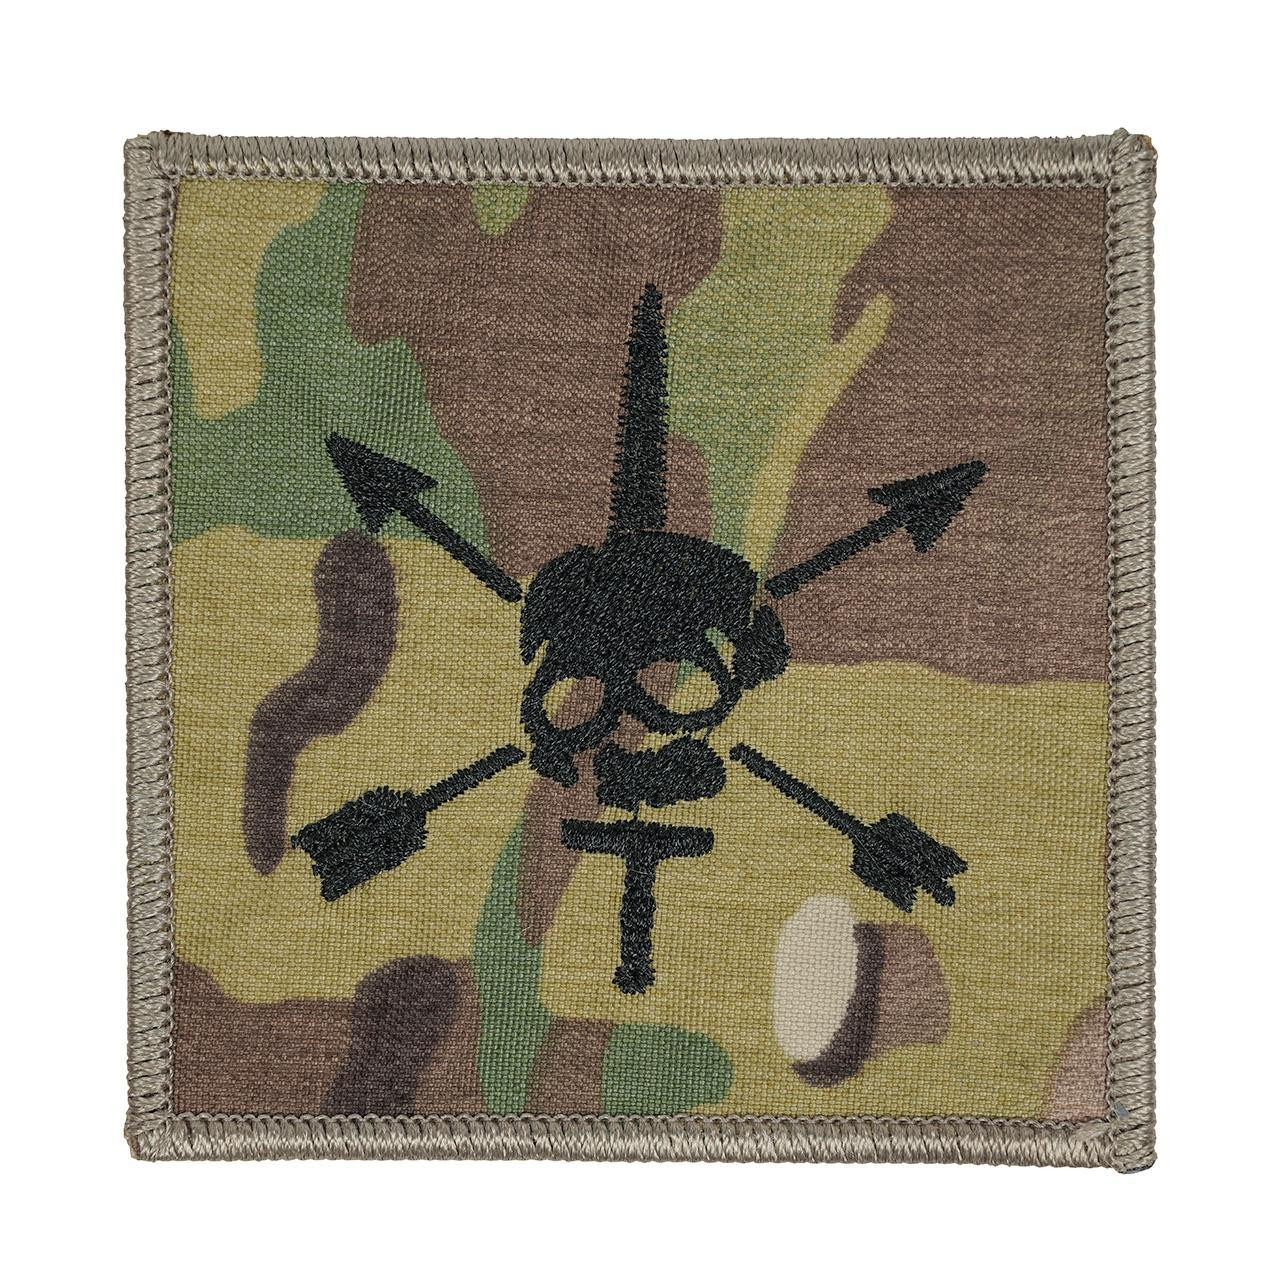 50336 SPECIAL FORCES PATCH